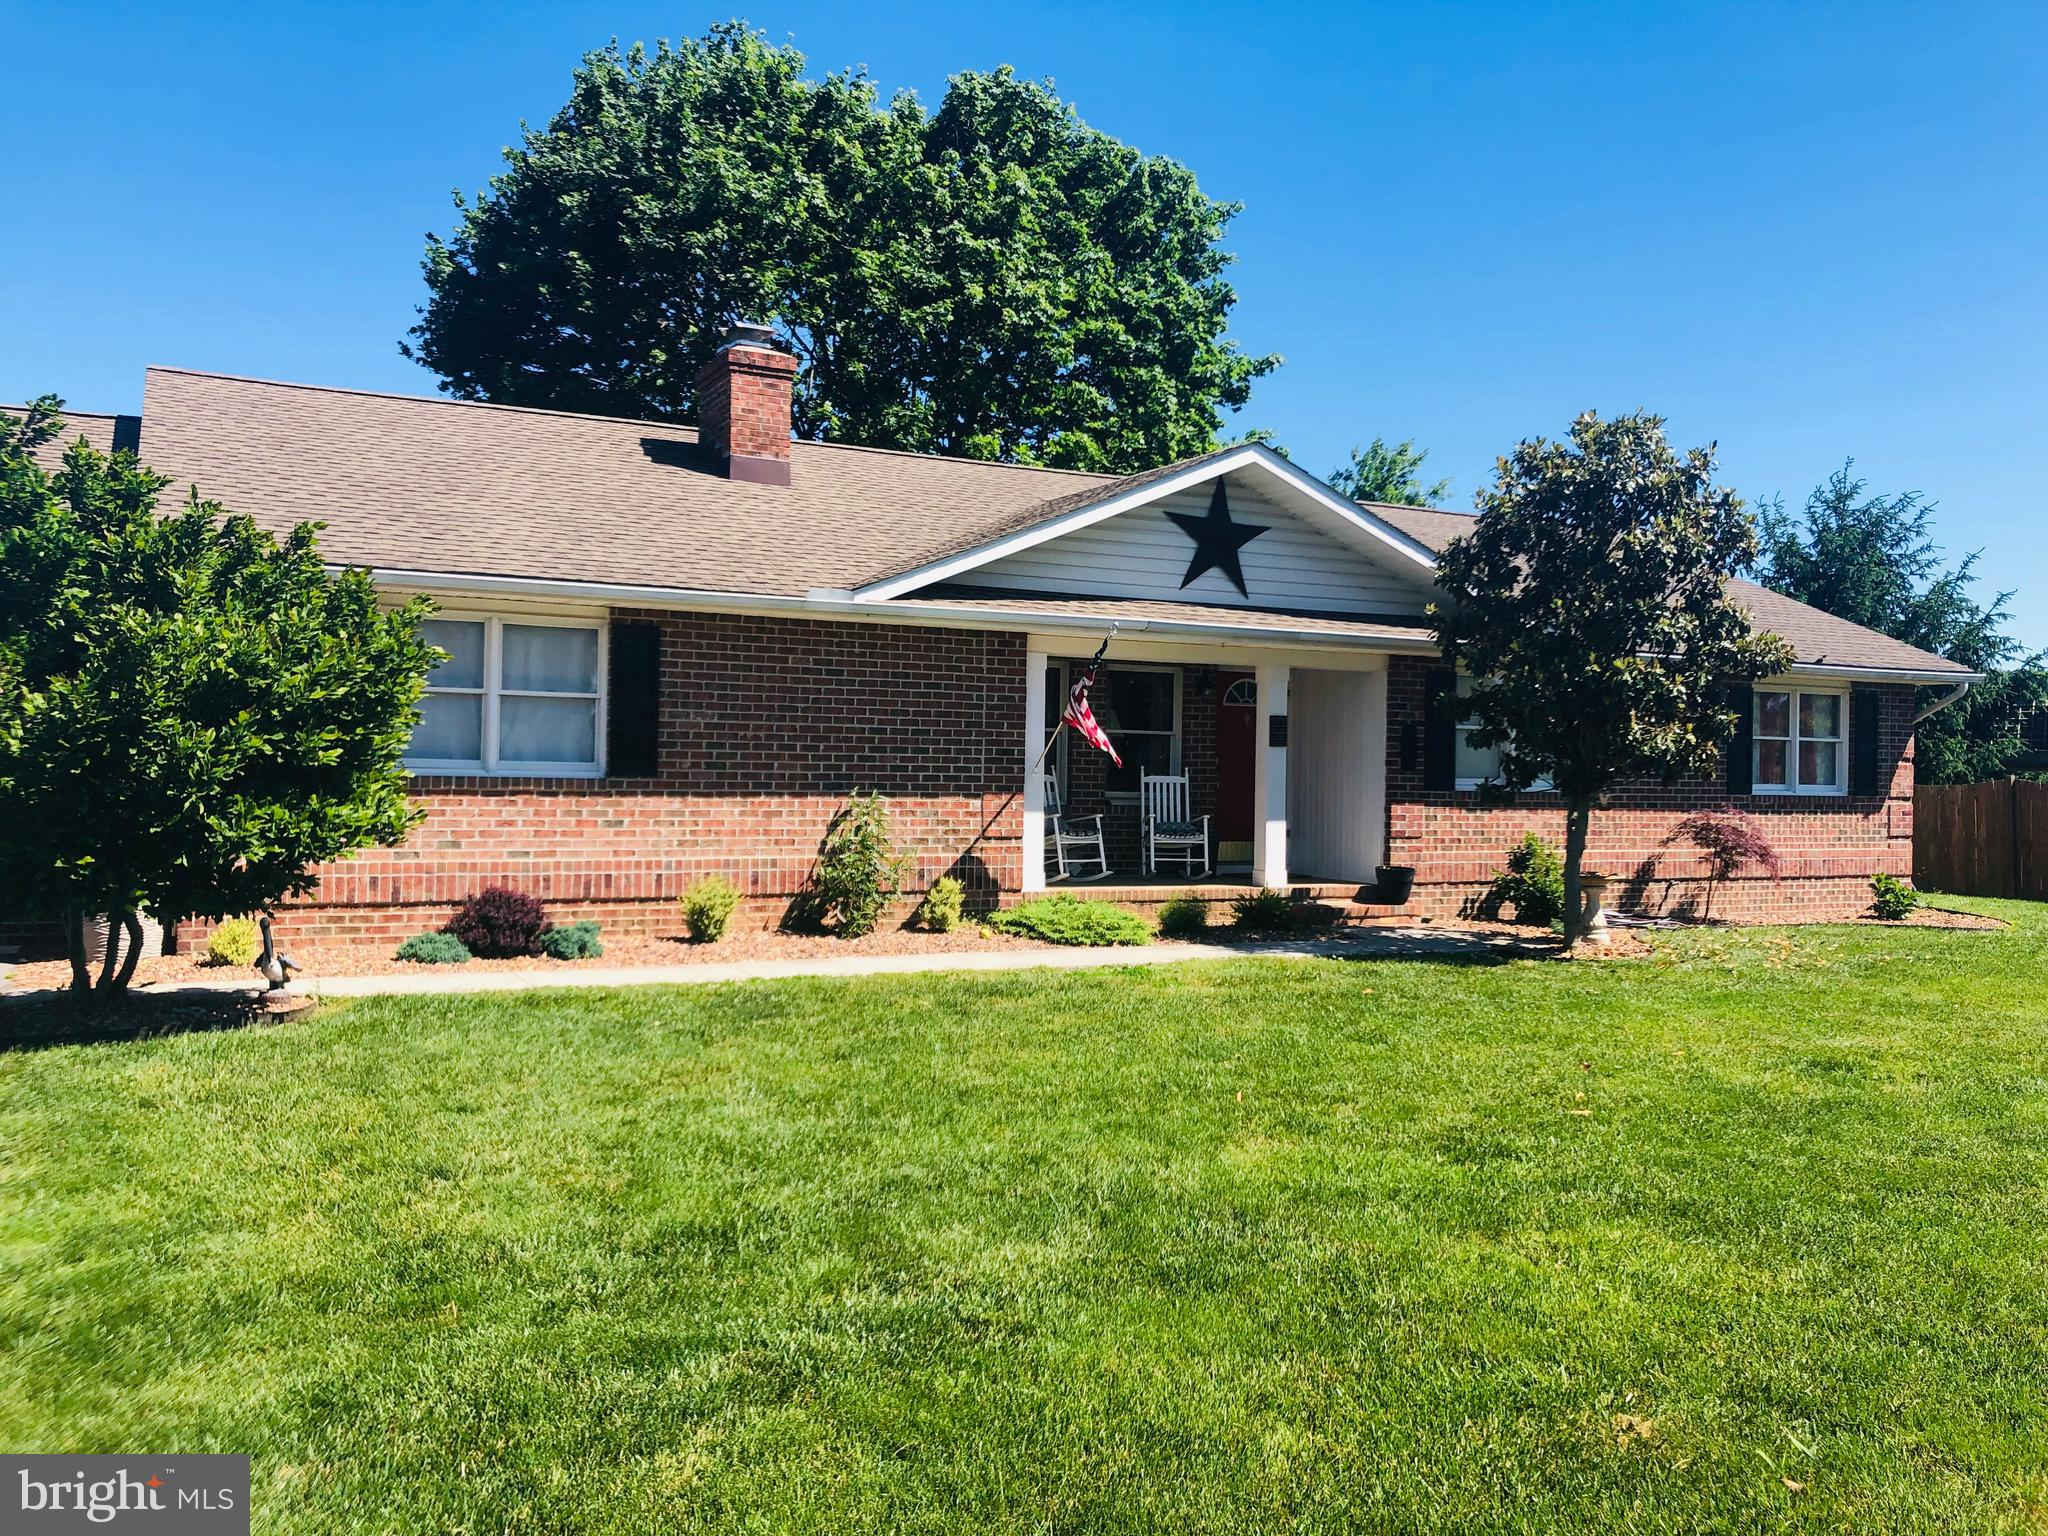 77 COVEY CROSSING, DOVER, DE 19904